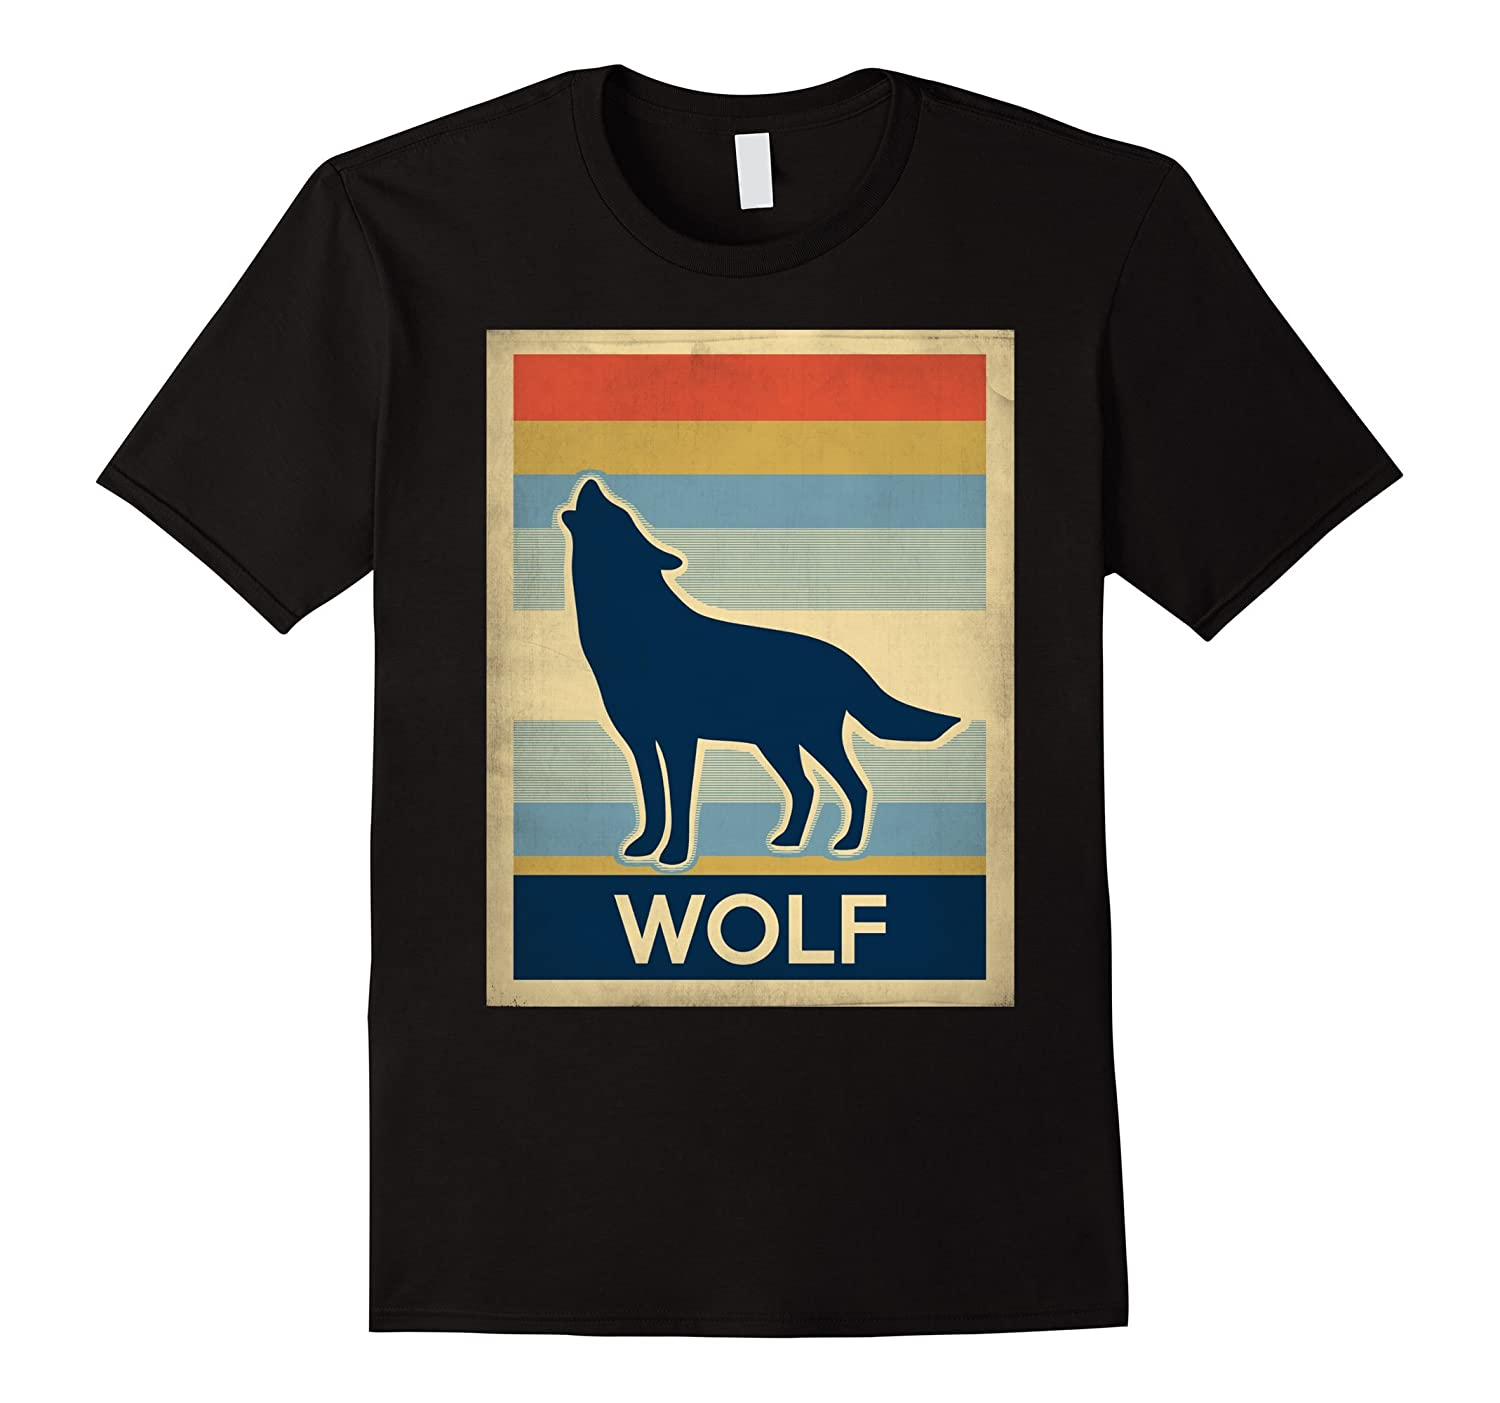 Vintage style wolf shirt art artvinatee for Amazon review wolf shirt